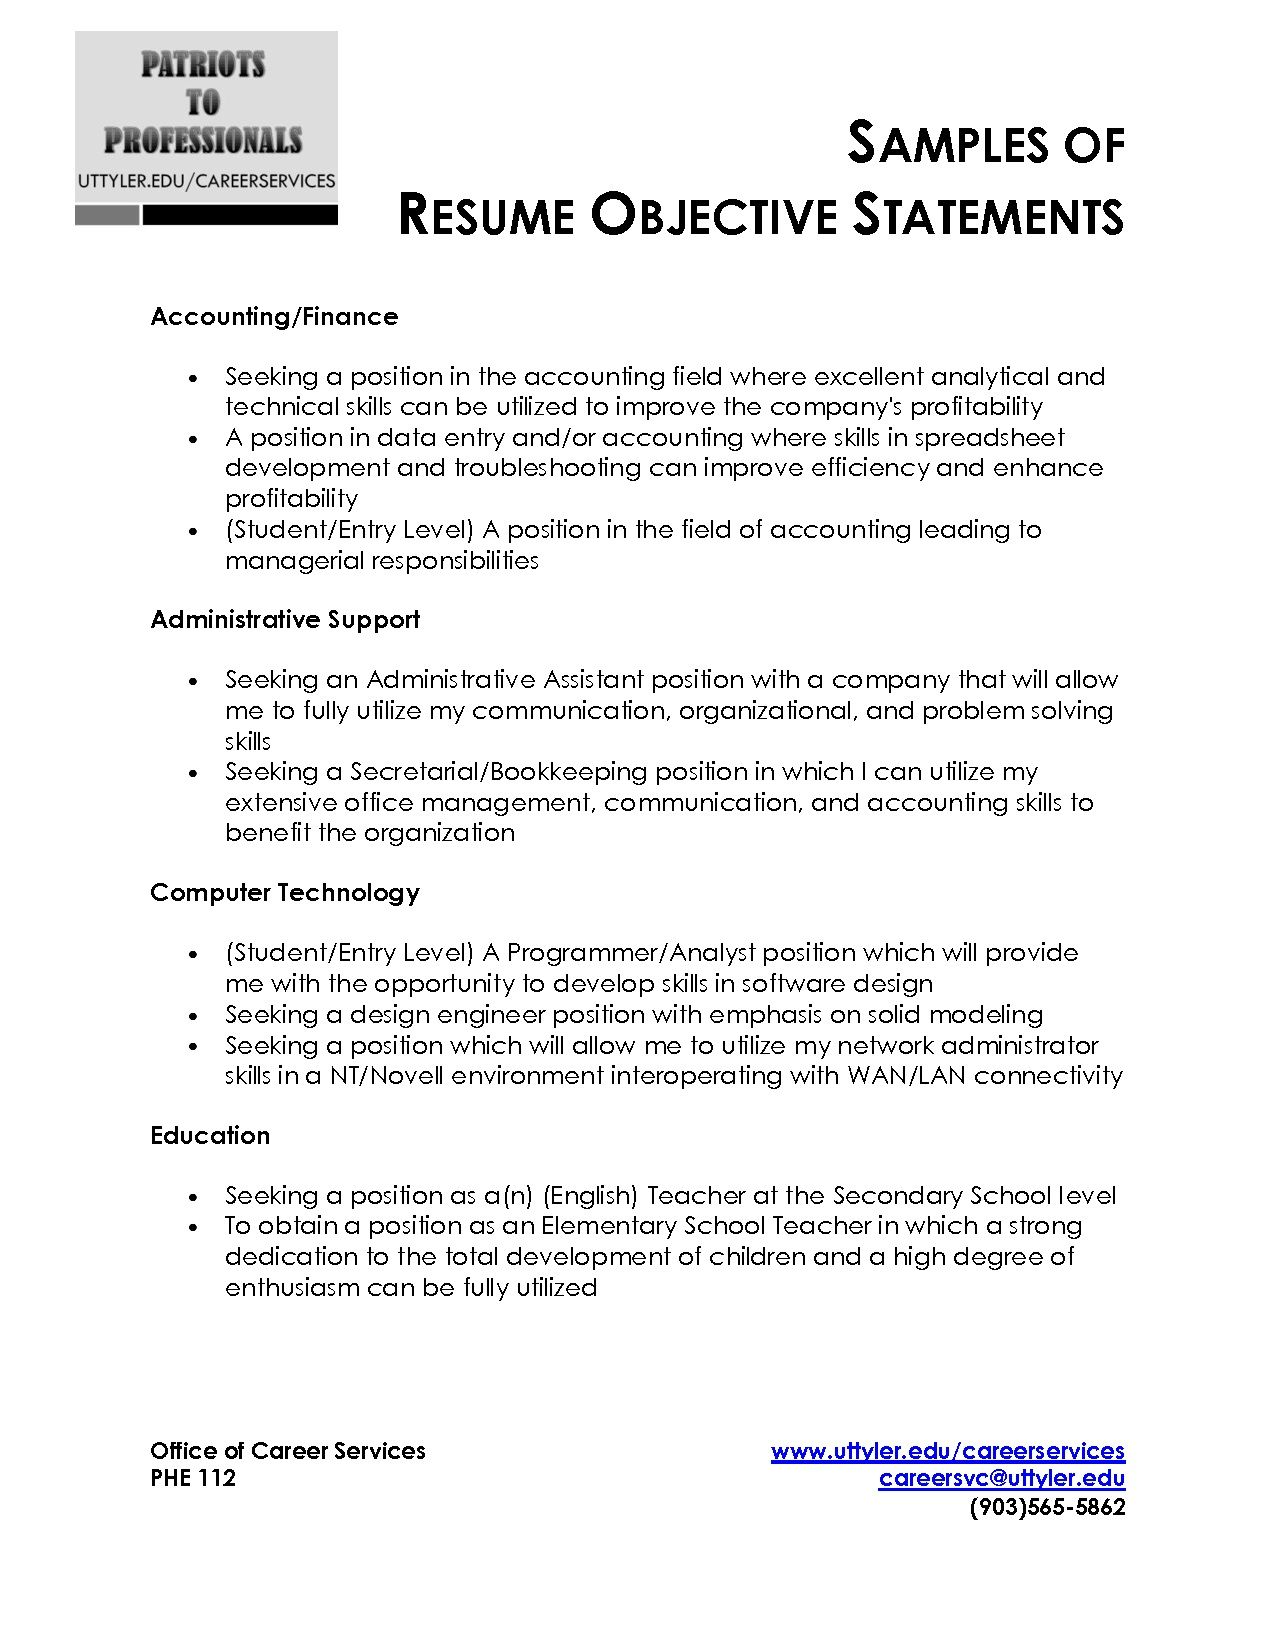 Resume Statement Examples Sample Resume Objective Statement  Adsbygoogle  Window